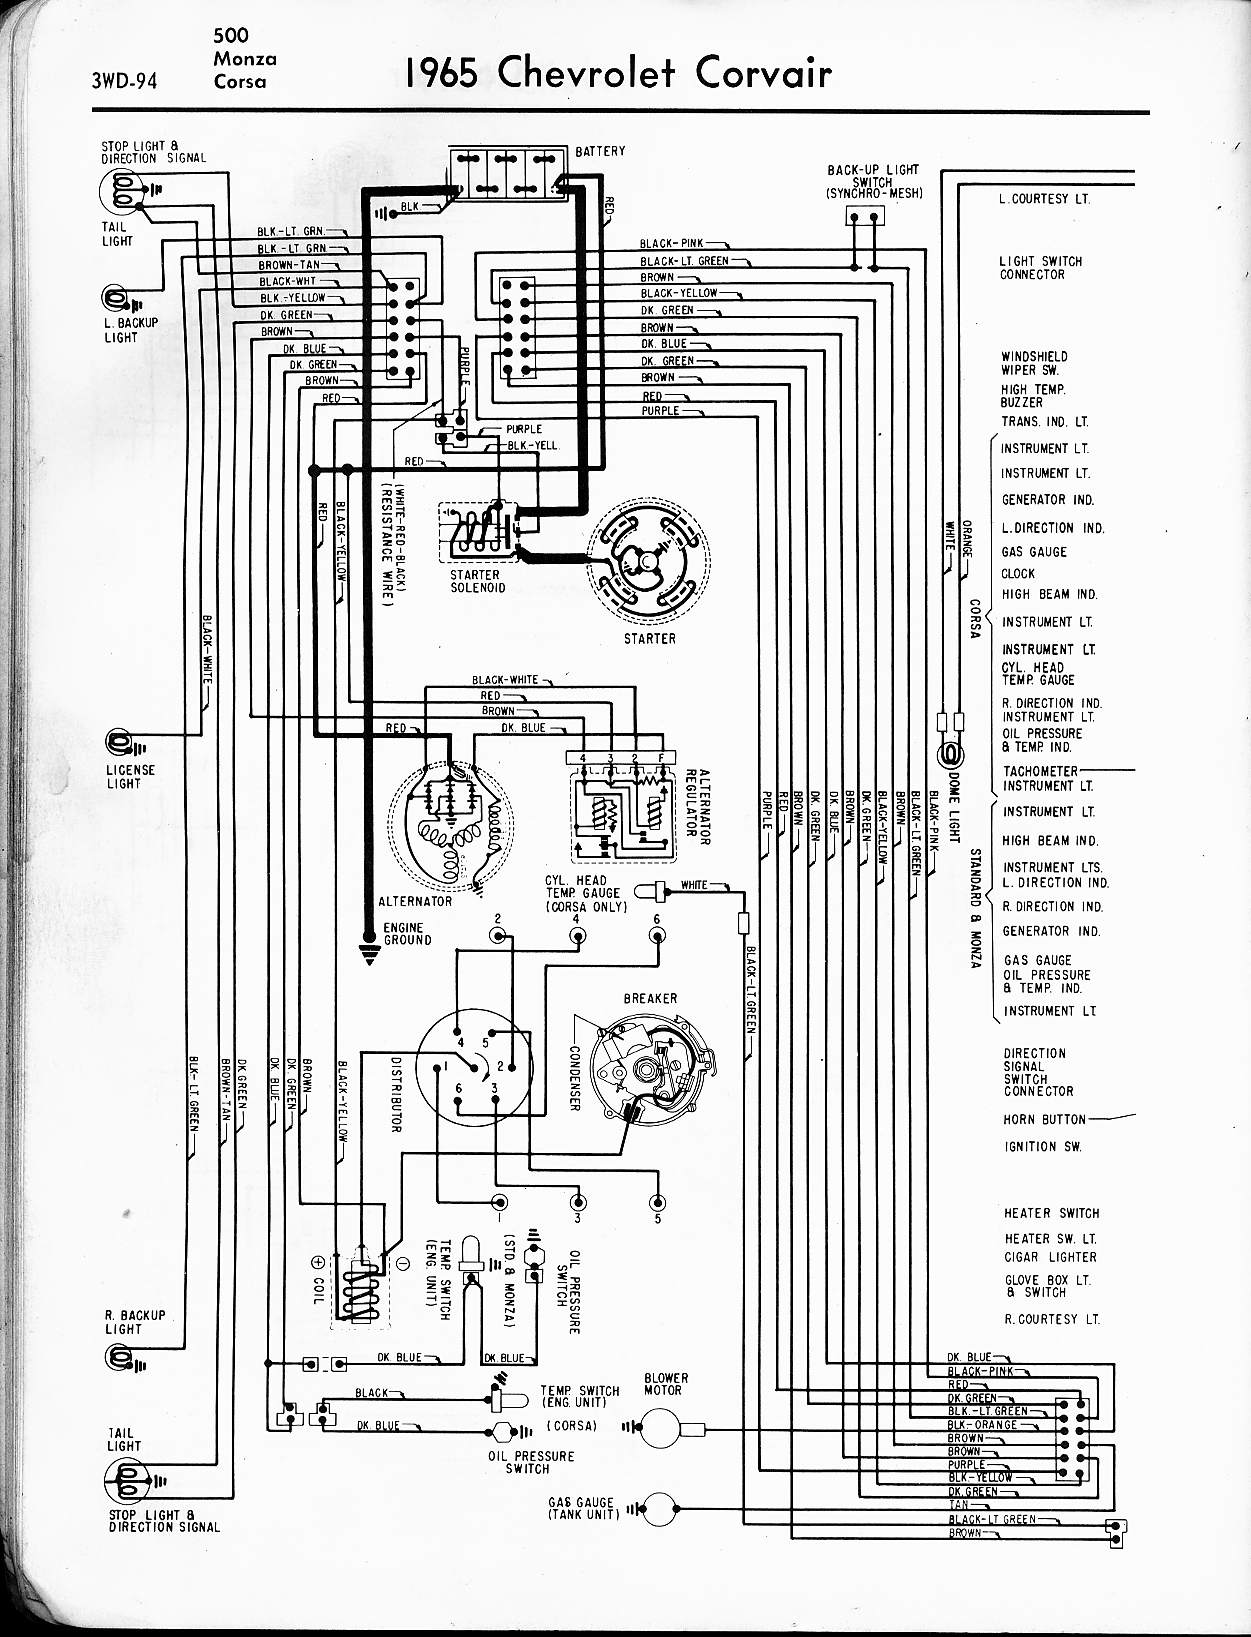 Marvelous Wiring Diagram 57 Chevy Bel Air Wiring Diagram Wiring 101 Capemaxxcnl